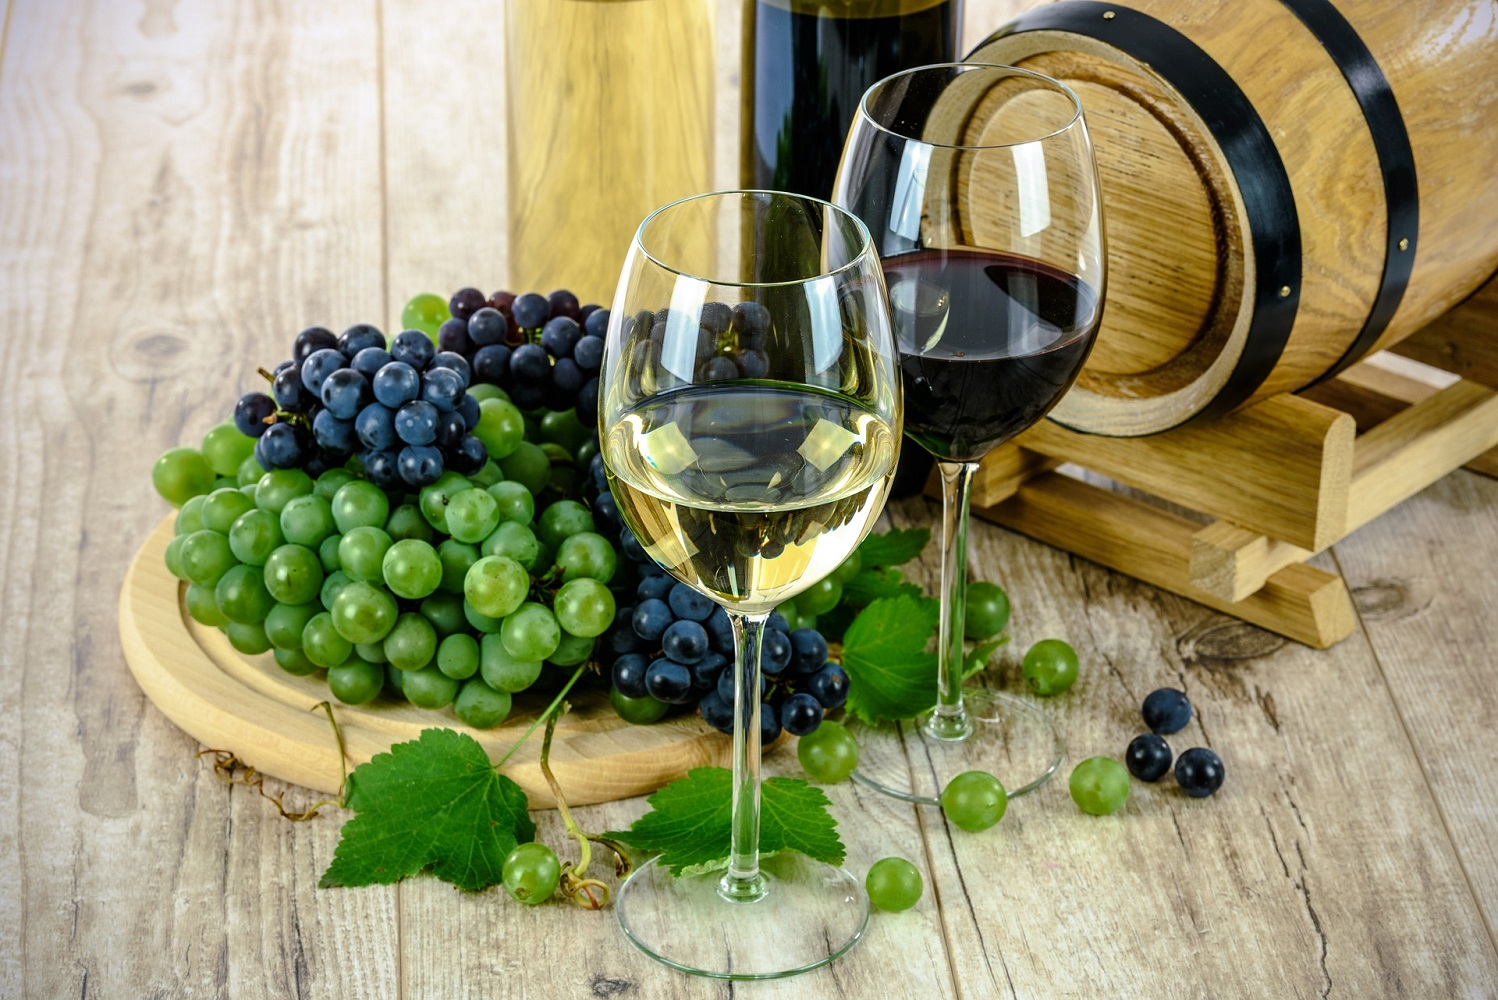 English wine and grapes